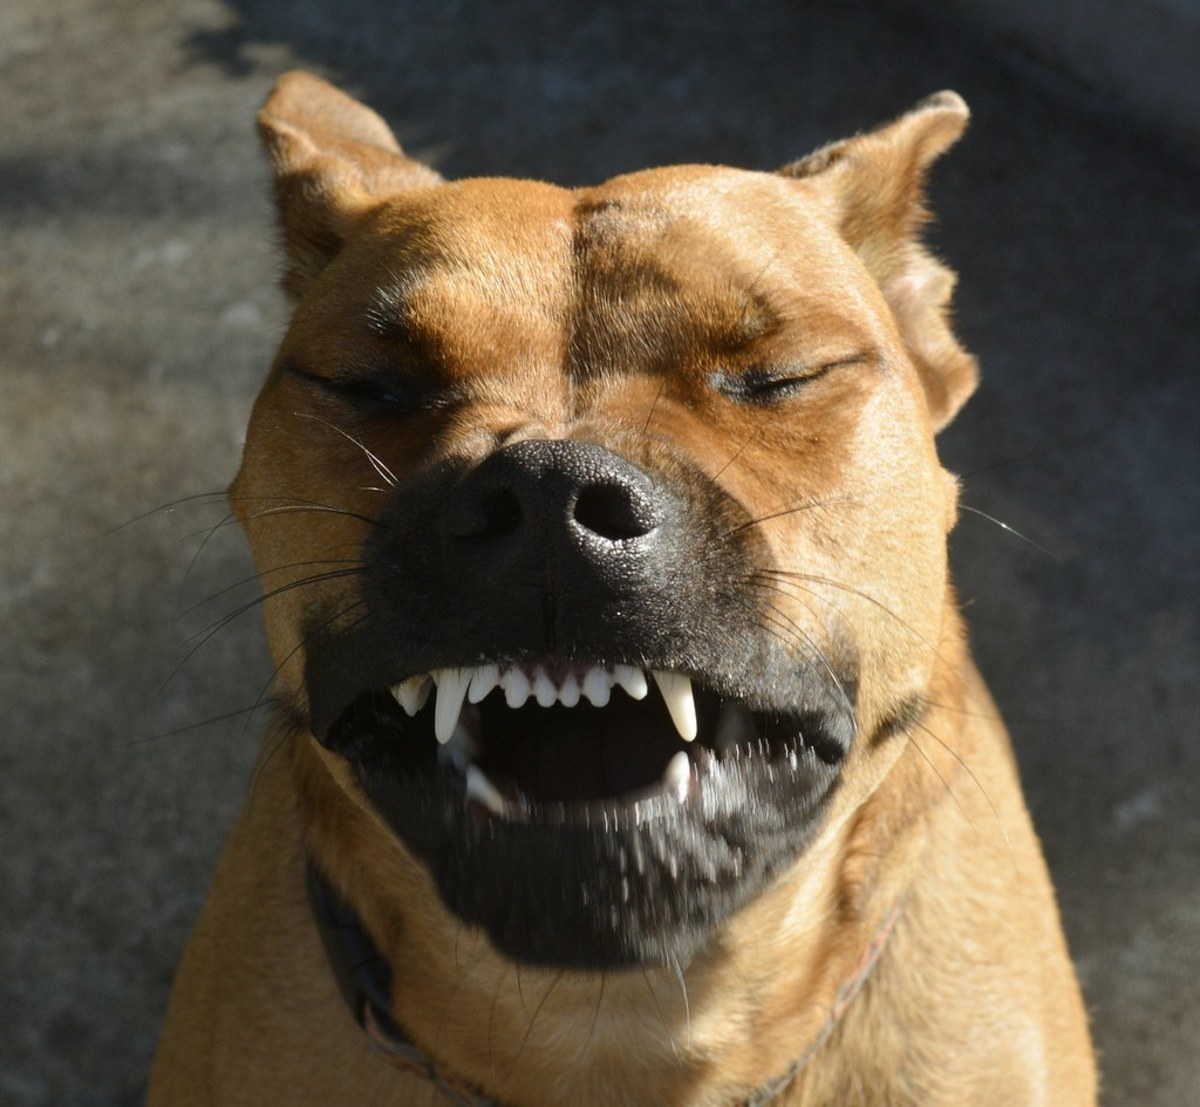 Dogs can sneeze both 'normally' and by drawing in air, called reverse sneezing